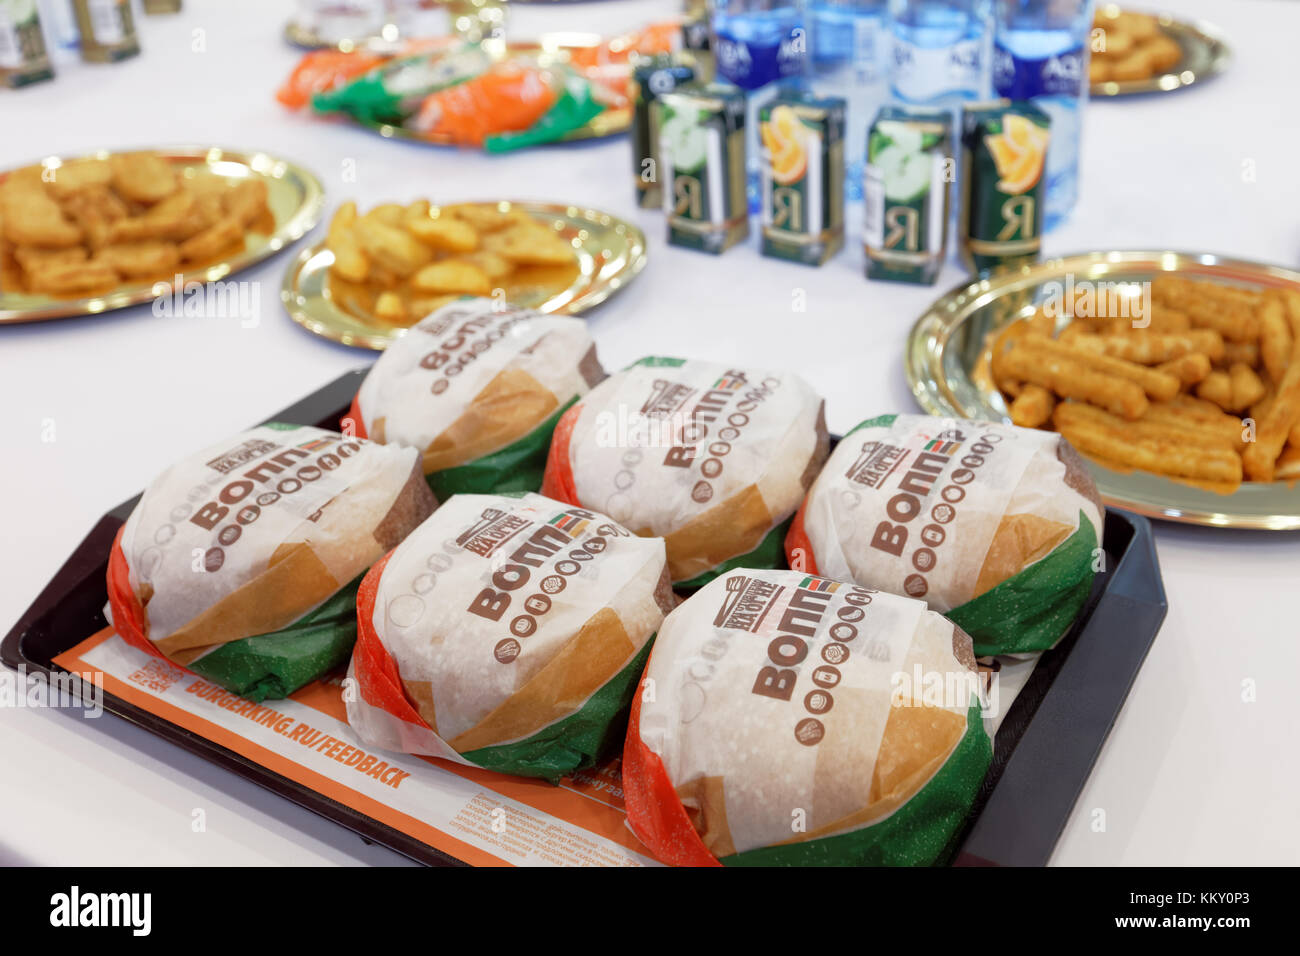 Six Whoppers on a tray in 500th Burger King restaurant in Russia in the day of opening - Stock Image